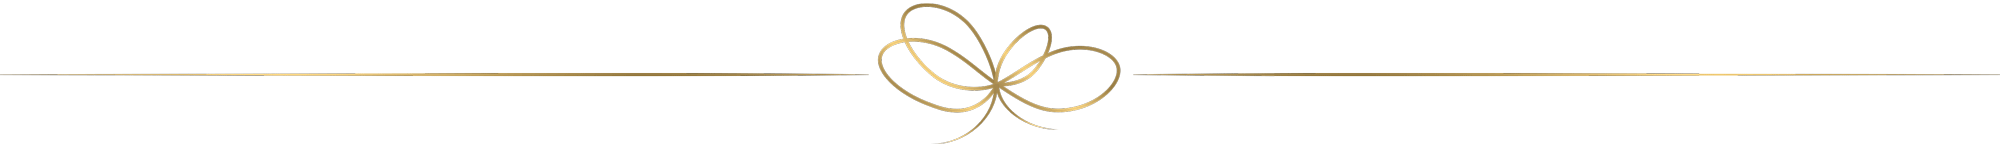 gold-transparent-divider-3